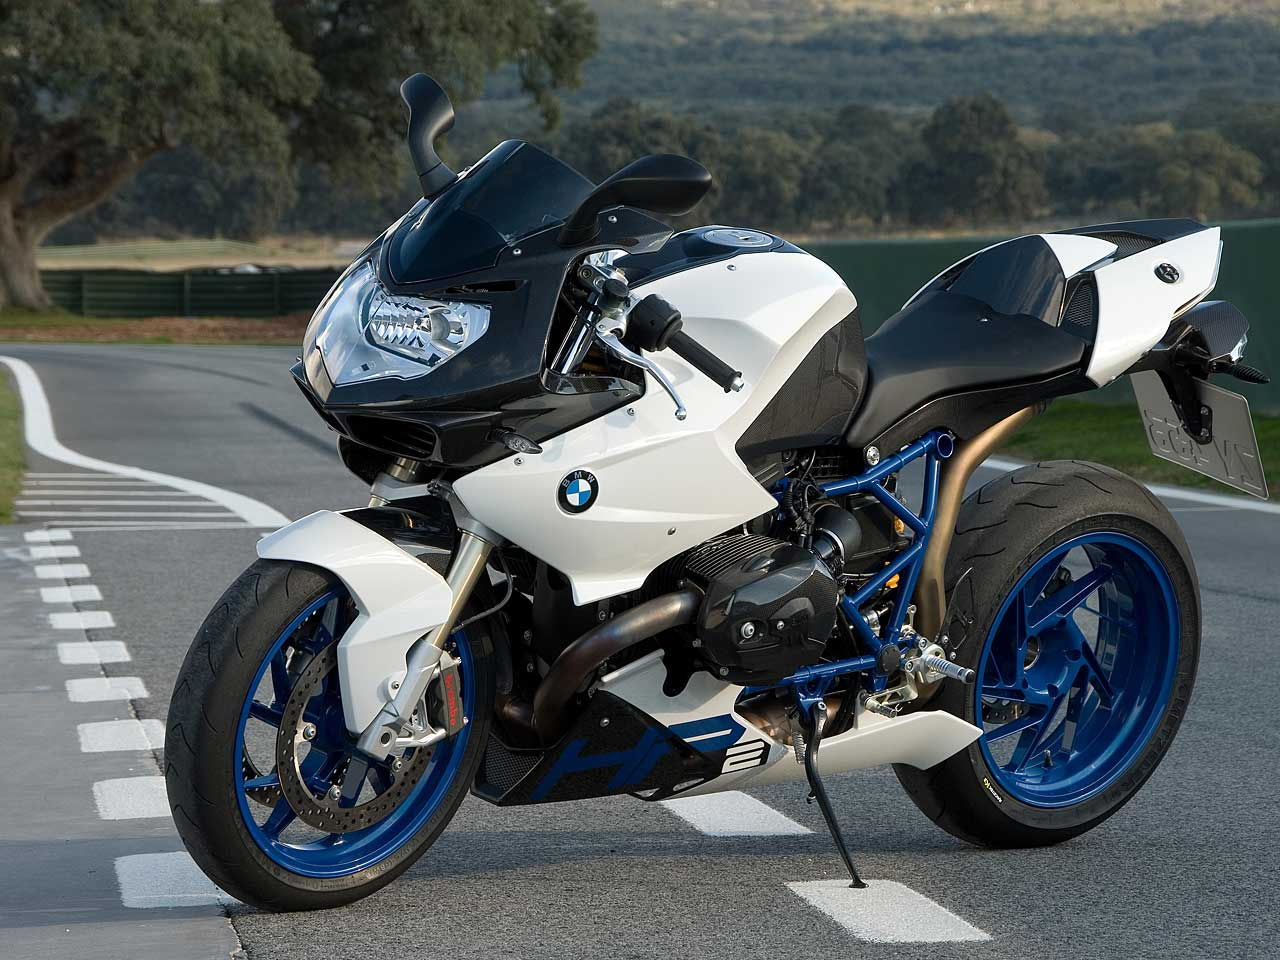 At 242 Mph, This Is The Record For The Fastest BMW ... |Fastest Bmw Bike